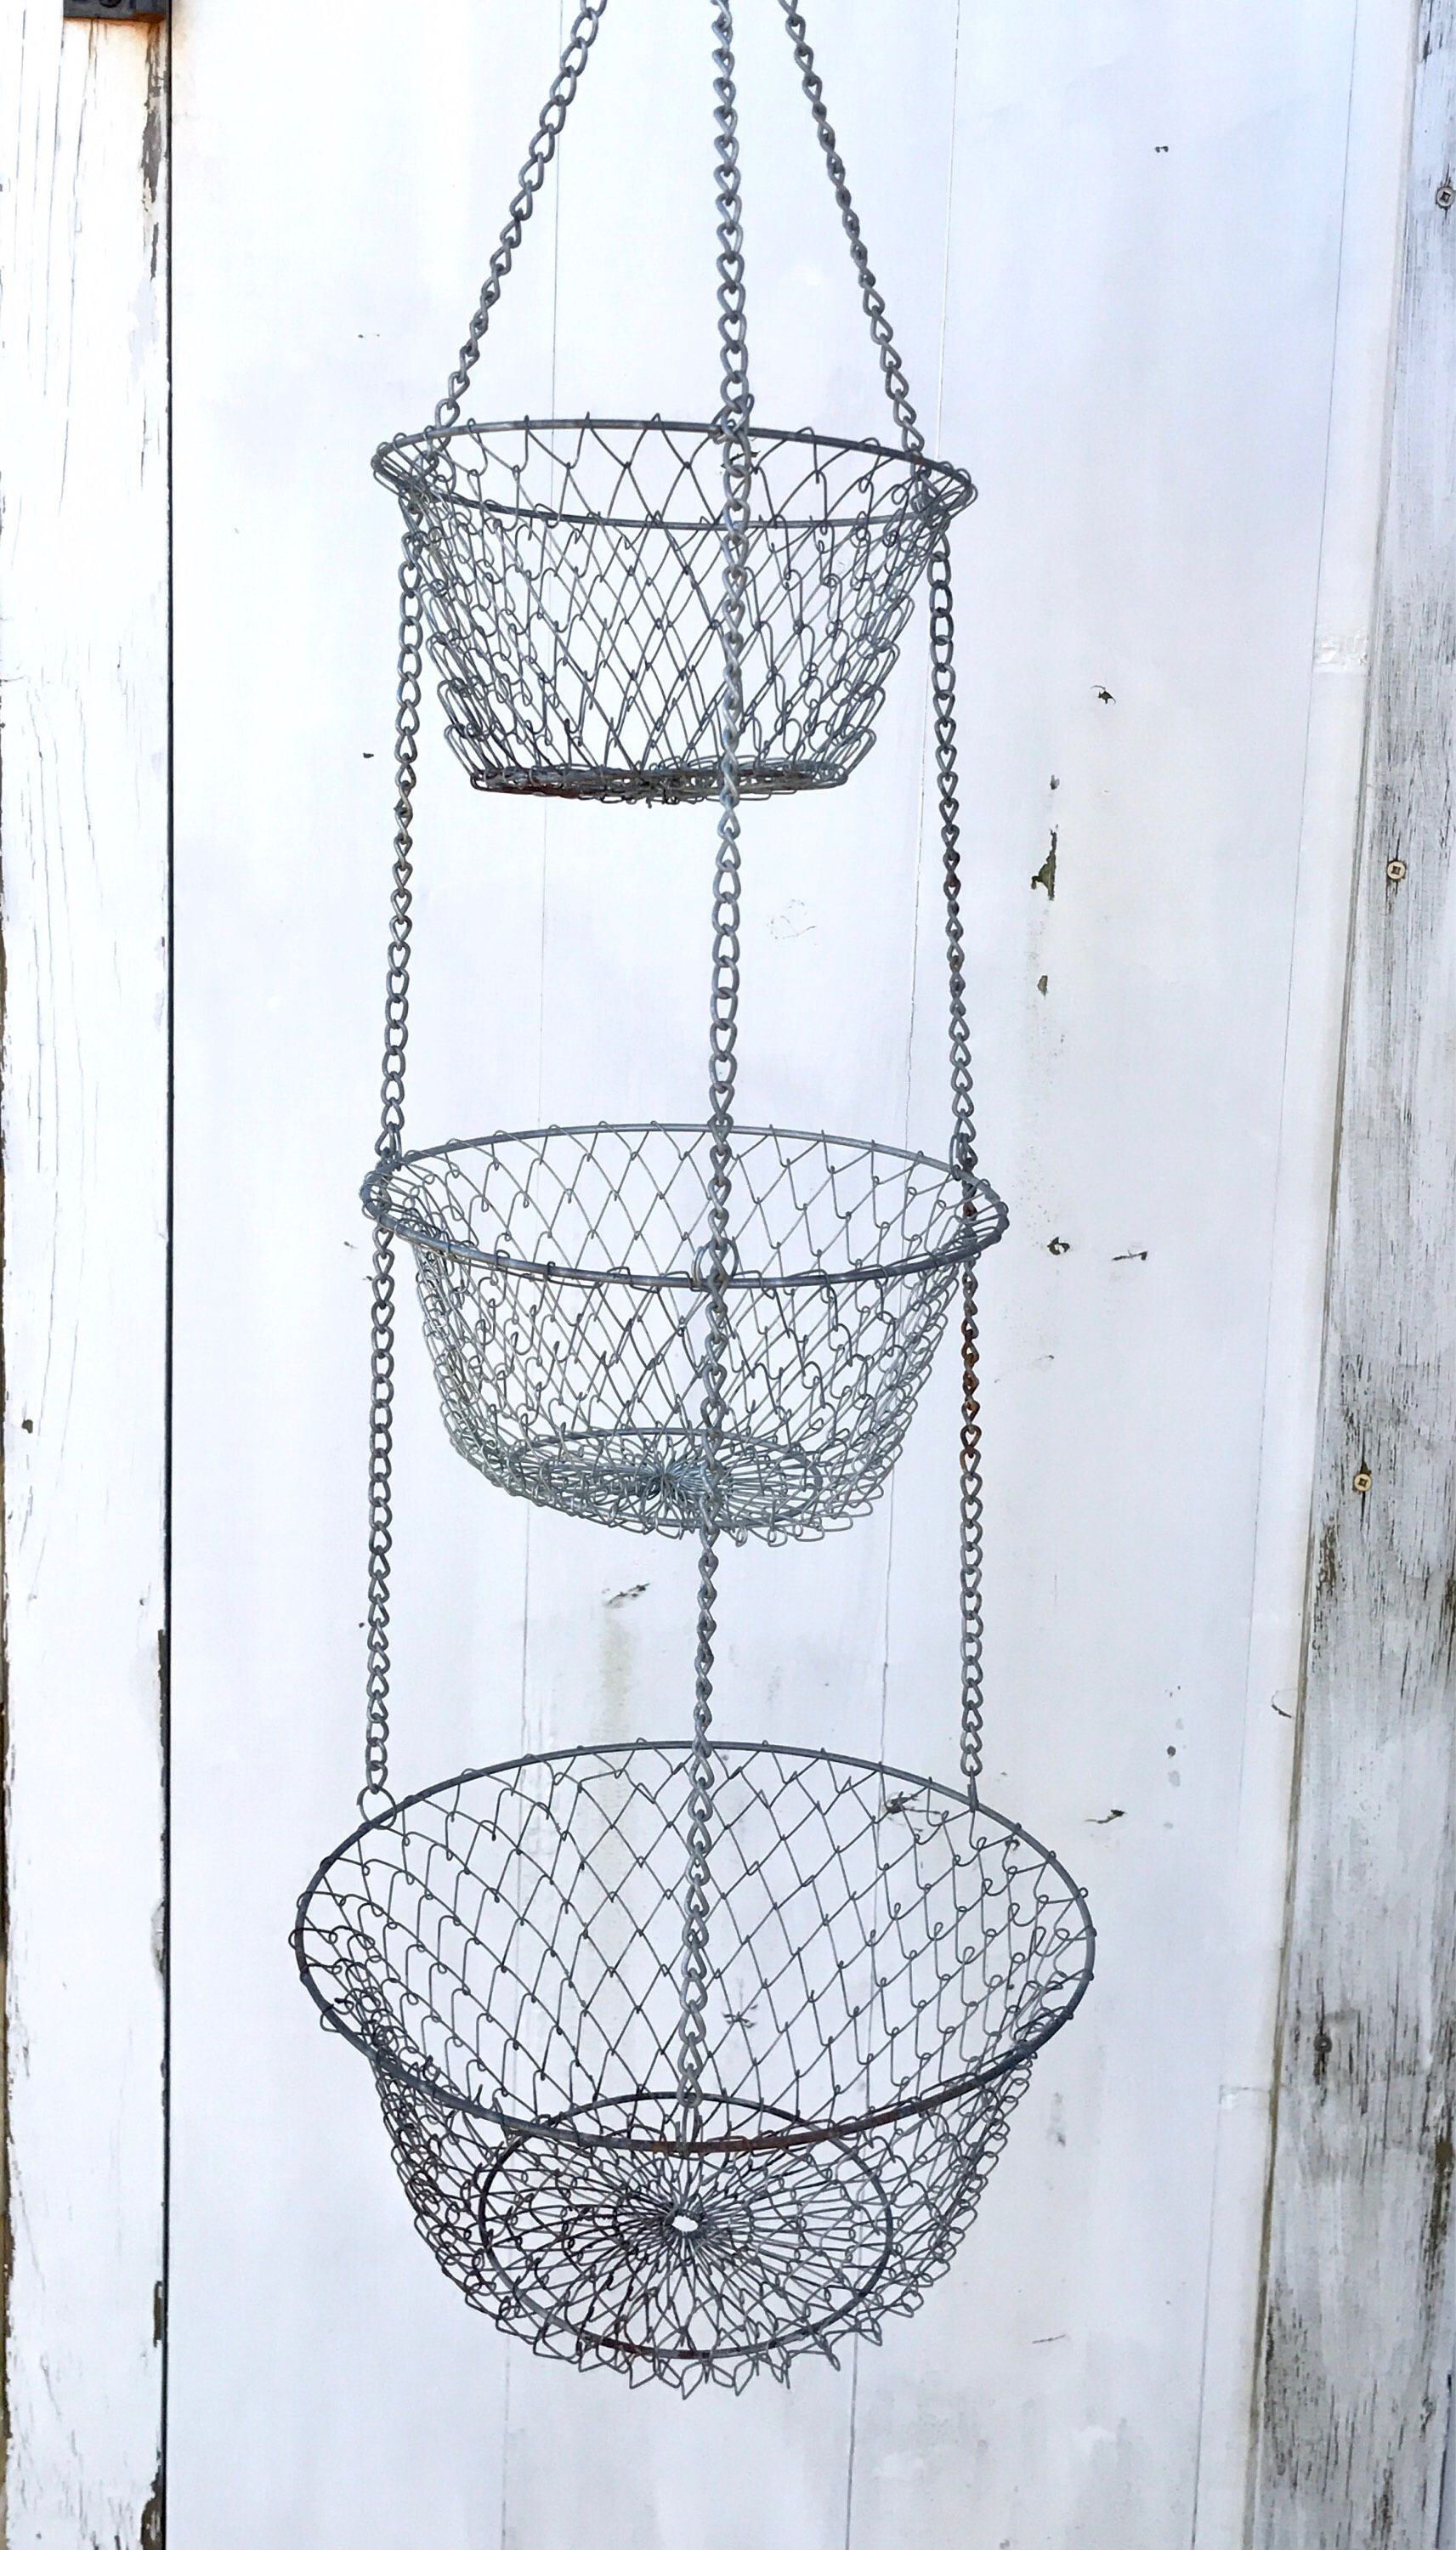 Hanging Fruit Basket | 3 Tier Basket | Wire Mesh | Egg Basket ...